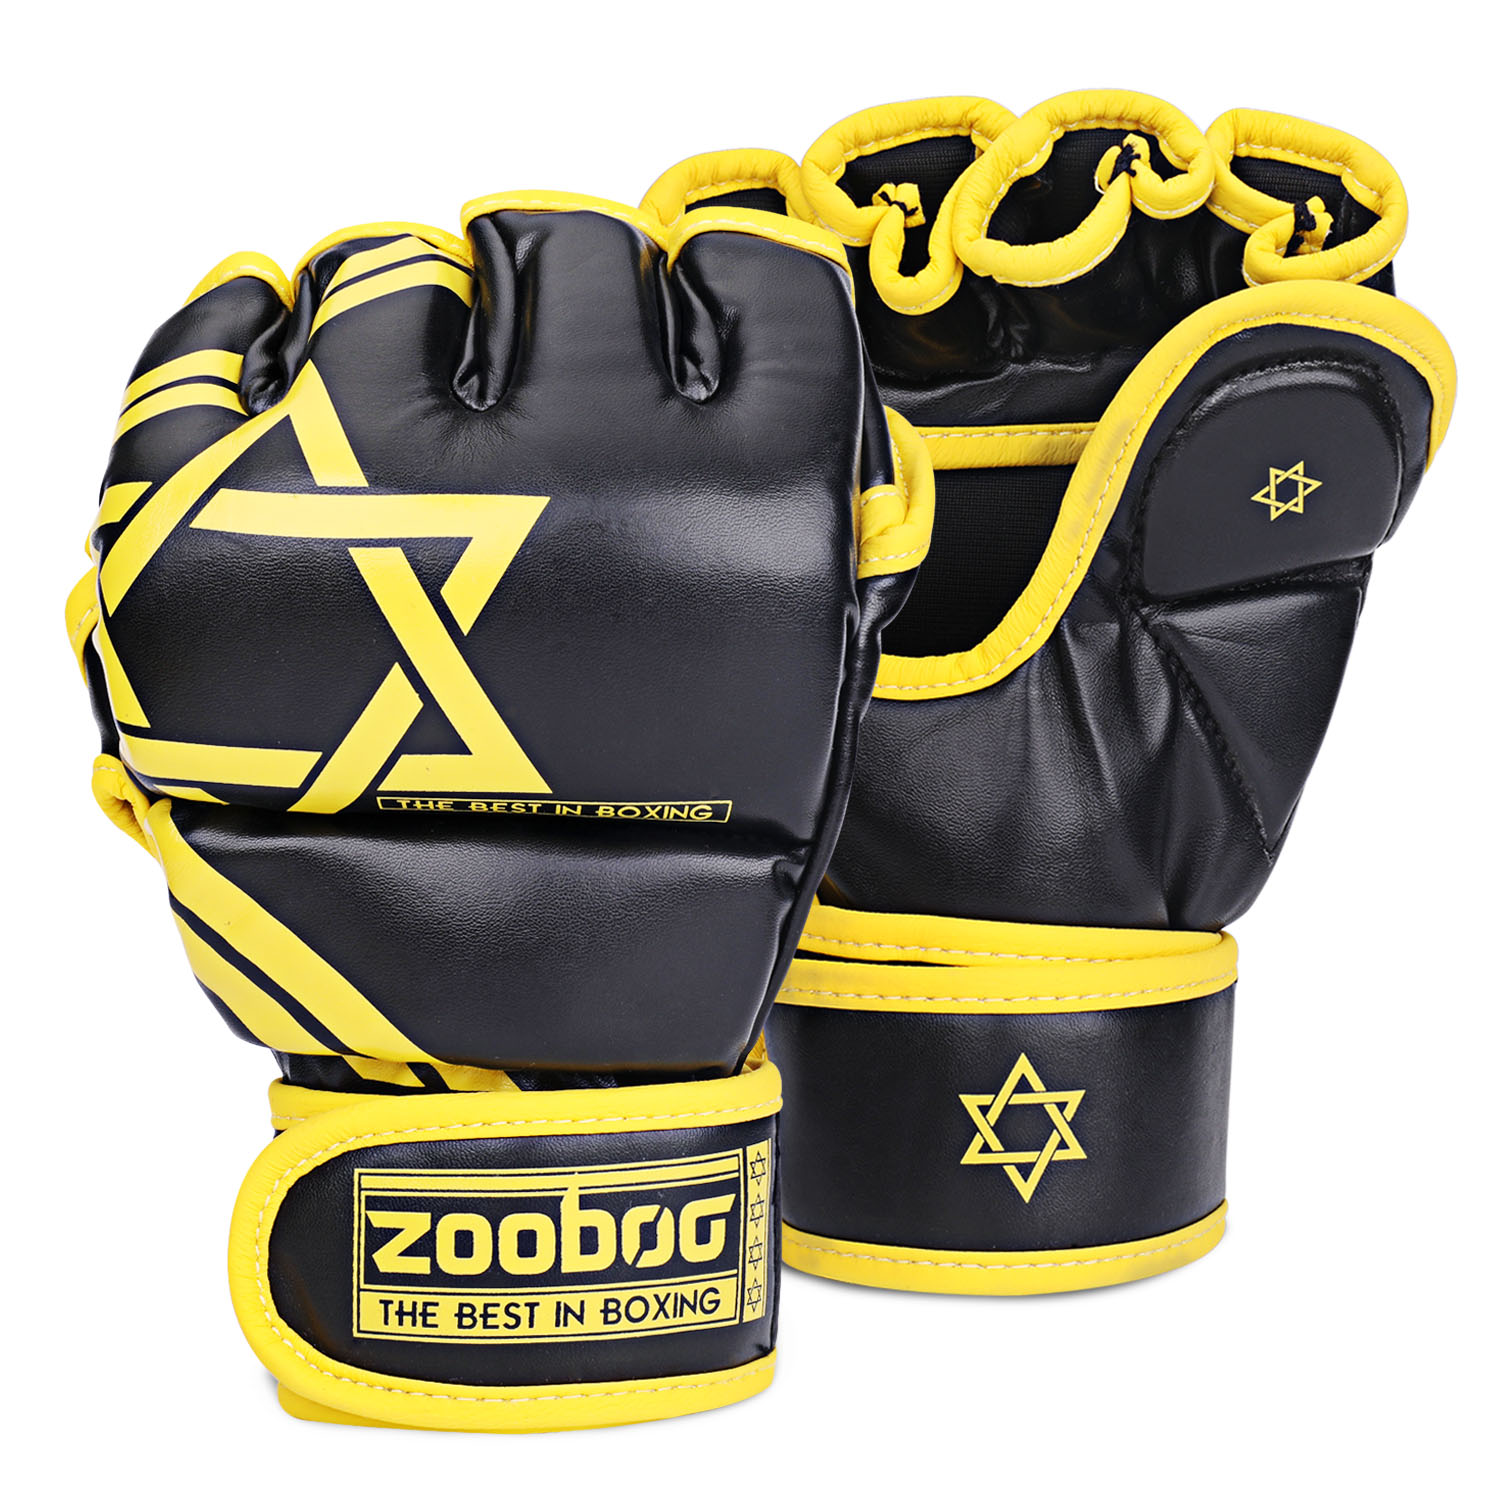 MMA Gloves Boxing Gear Grappling Martial Arts Sparring Taekwondo Hand Gloves Fighting Leather Mitts Training Gloves Kids Women Men